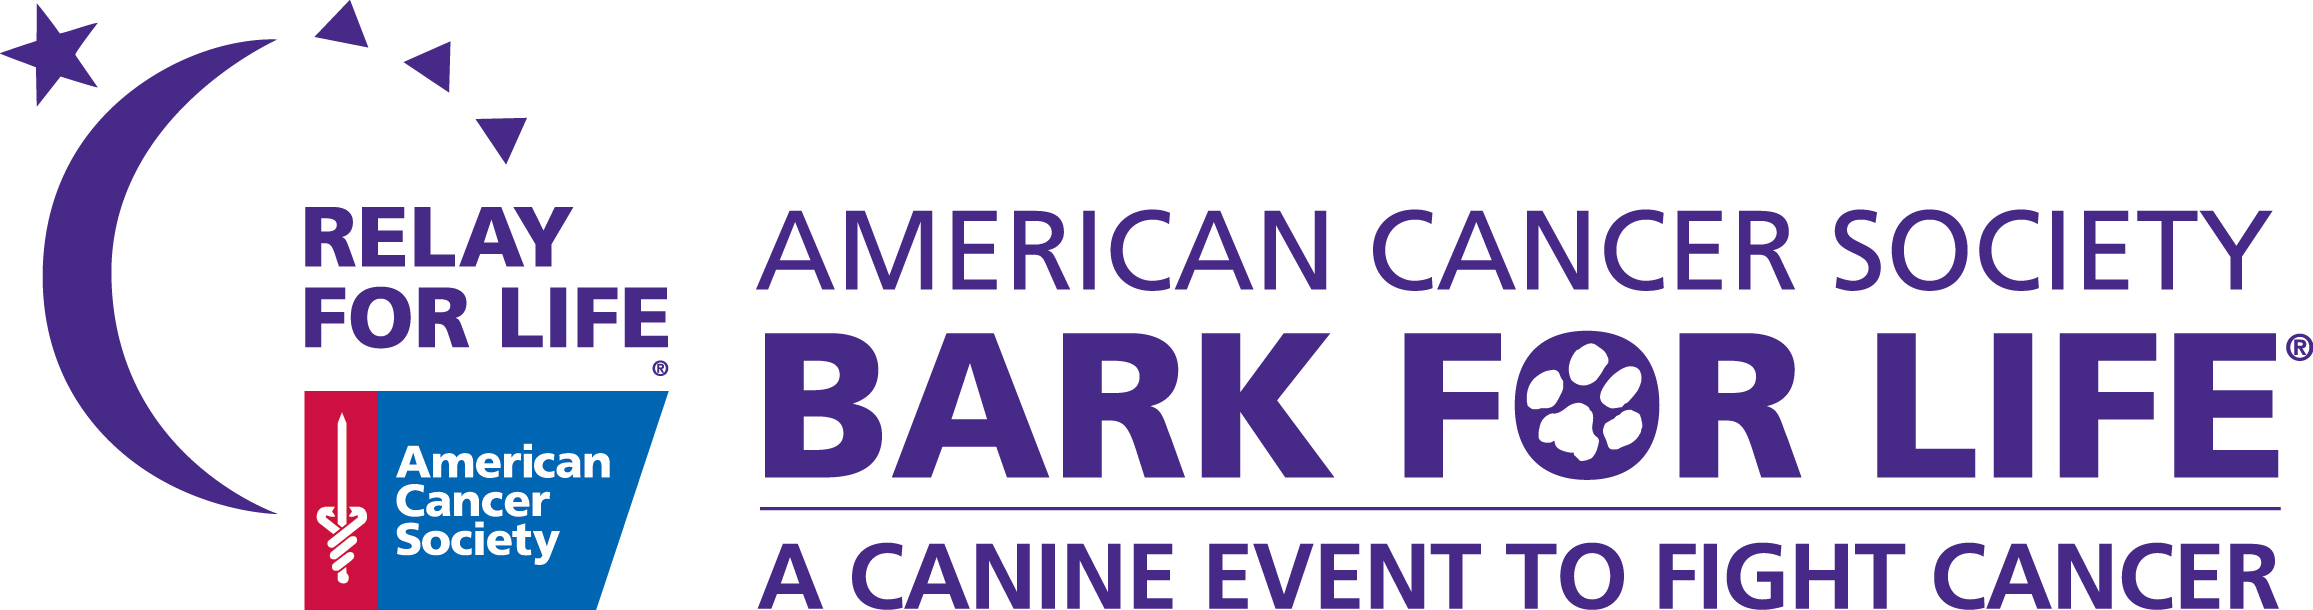 RELAY FOR LIFE American Cancer Society AMERICAN CANCER SOCIETY BARK FOR LIFE  A CANINE EVENT TO FIGHT CANCER